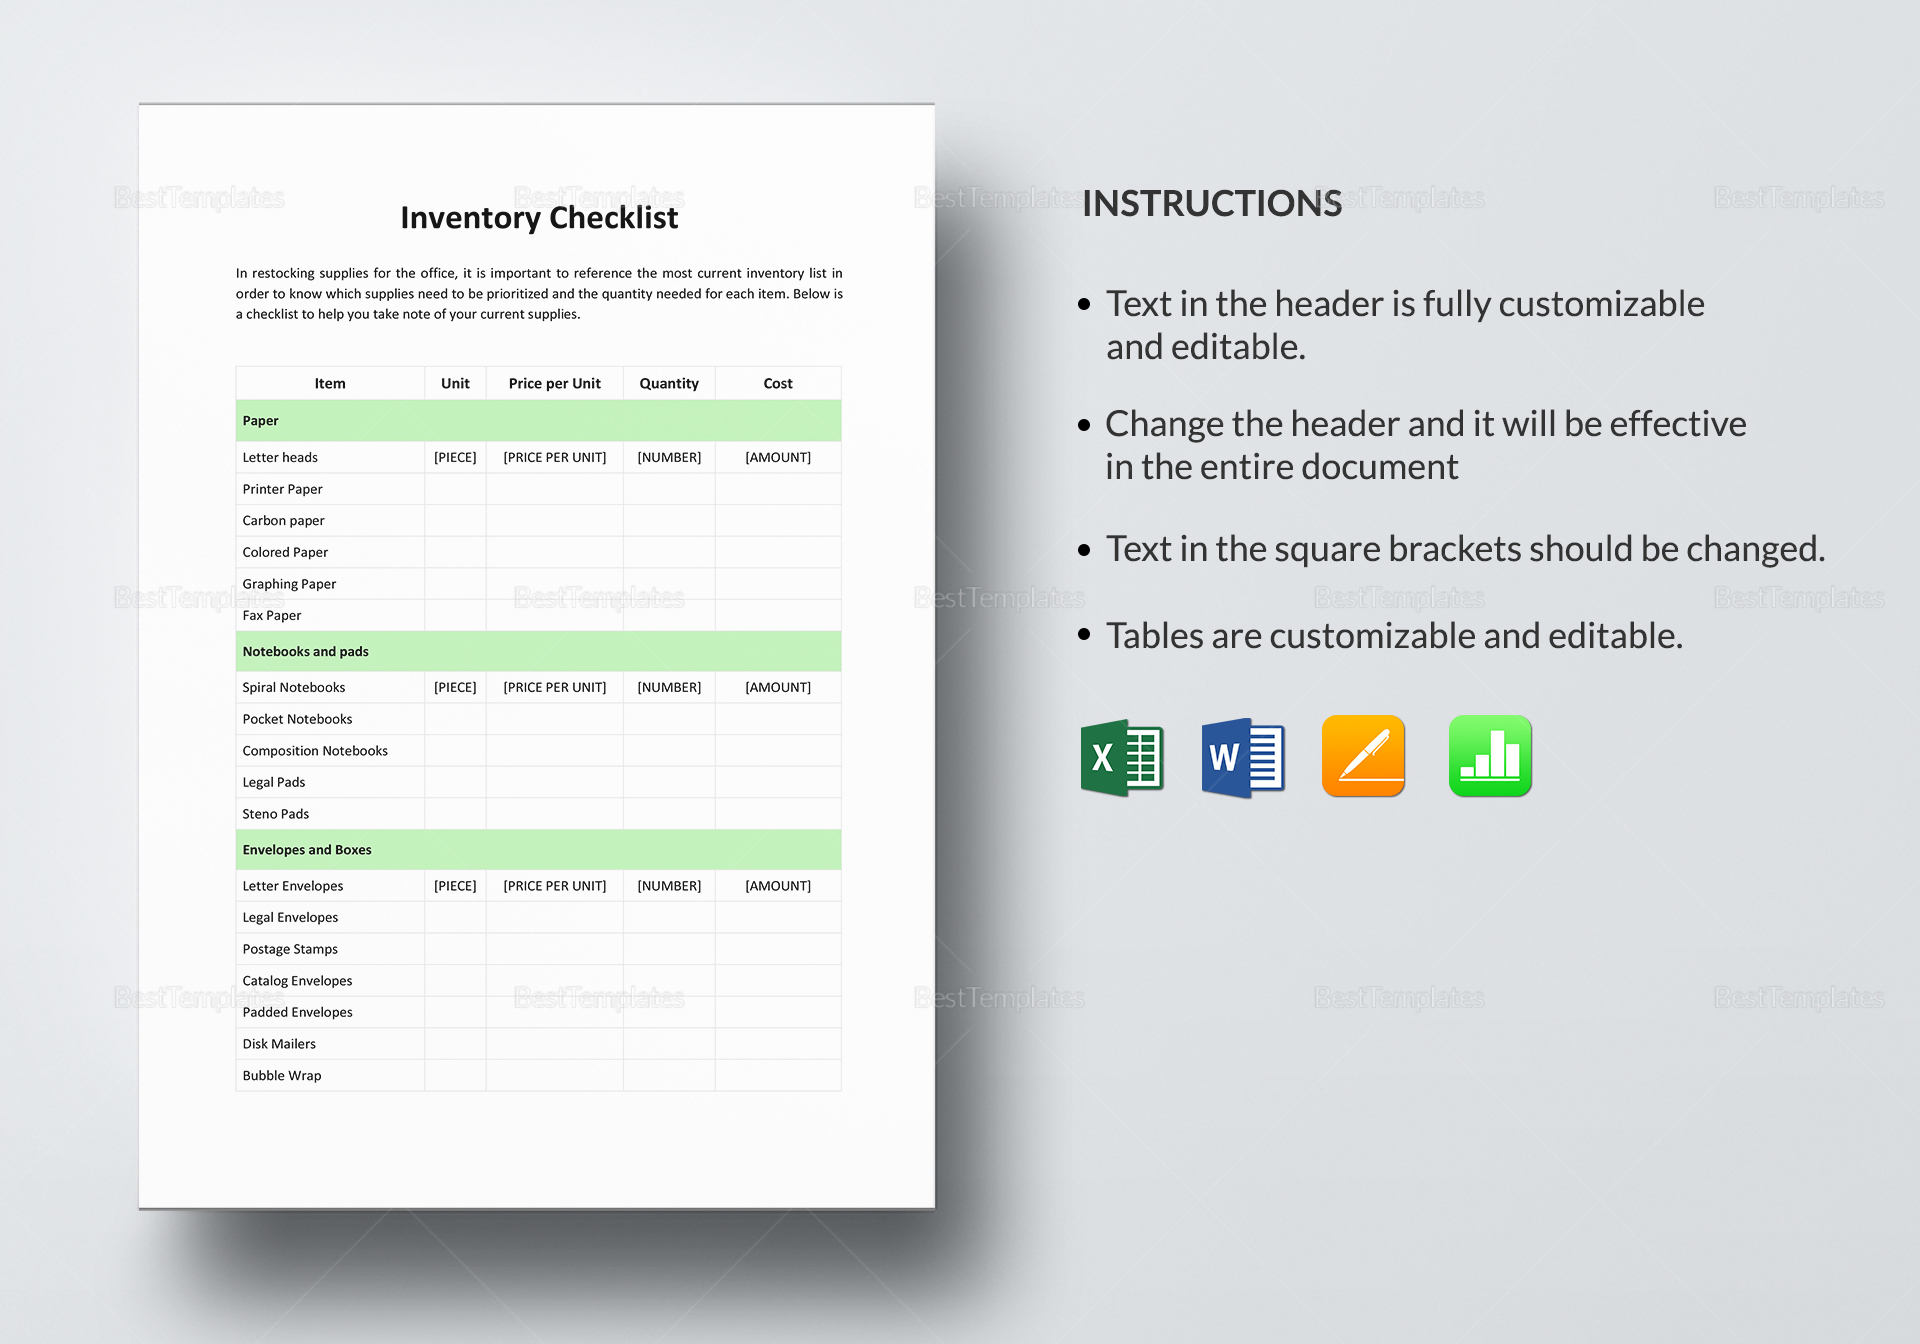 Inventory Checklist Template to Print